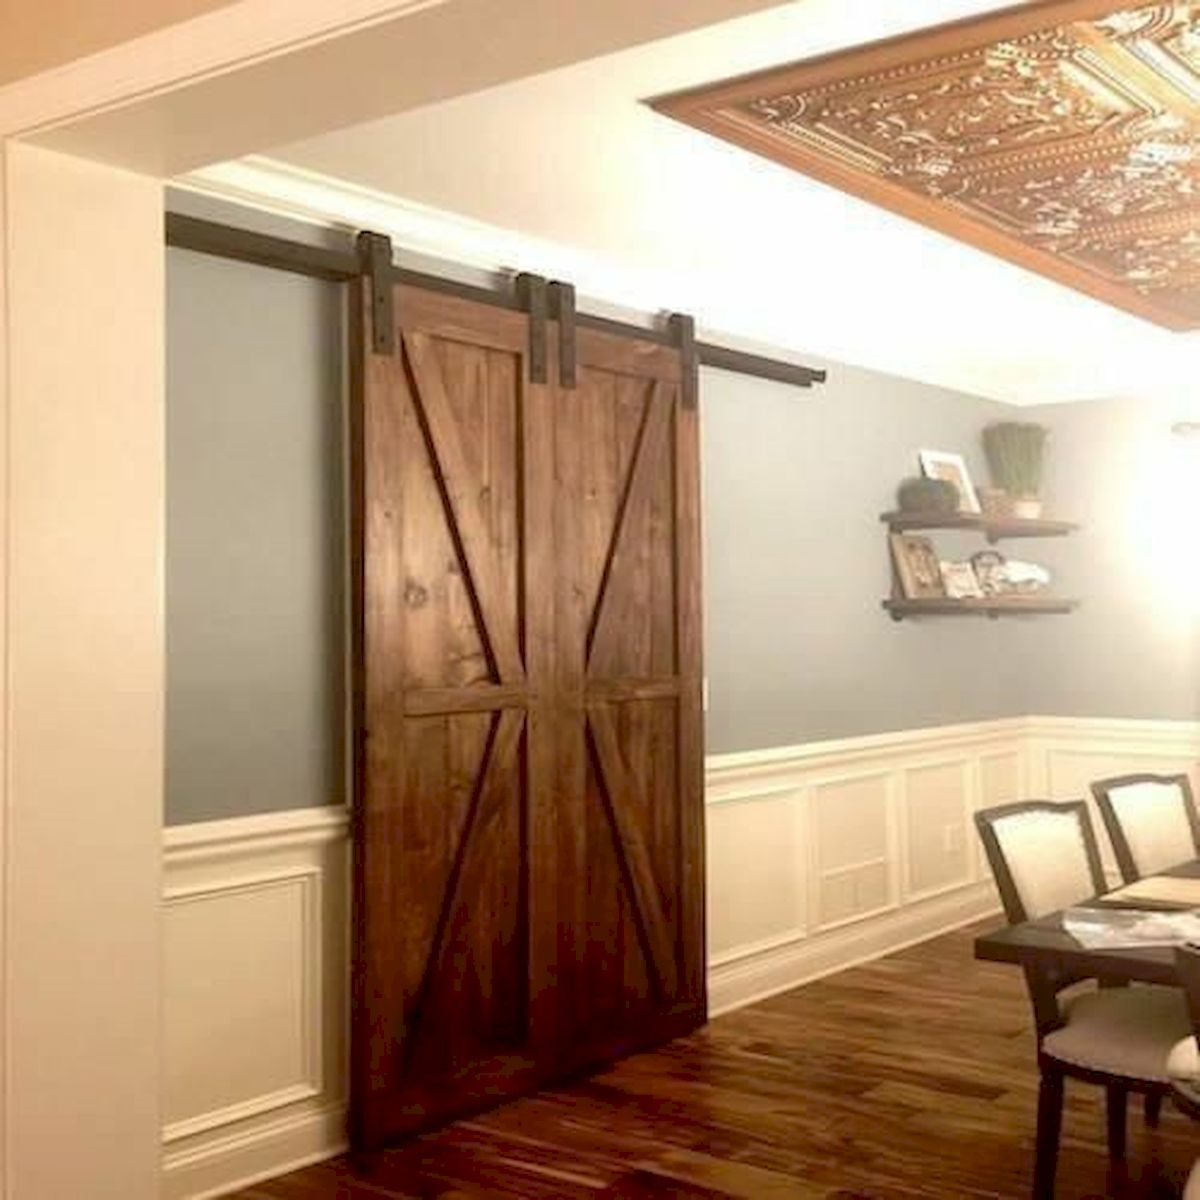 70 Rustic Home Decor Ideas for Doors and Windows (13)